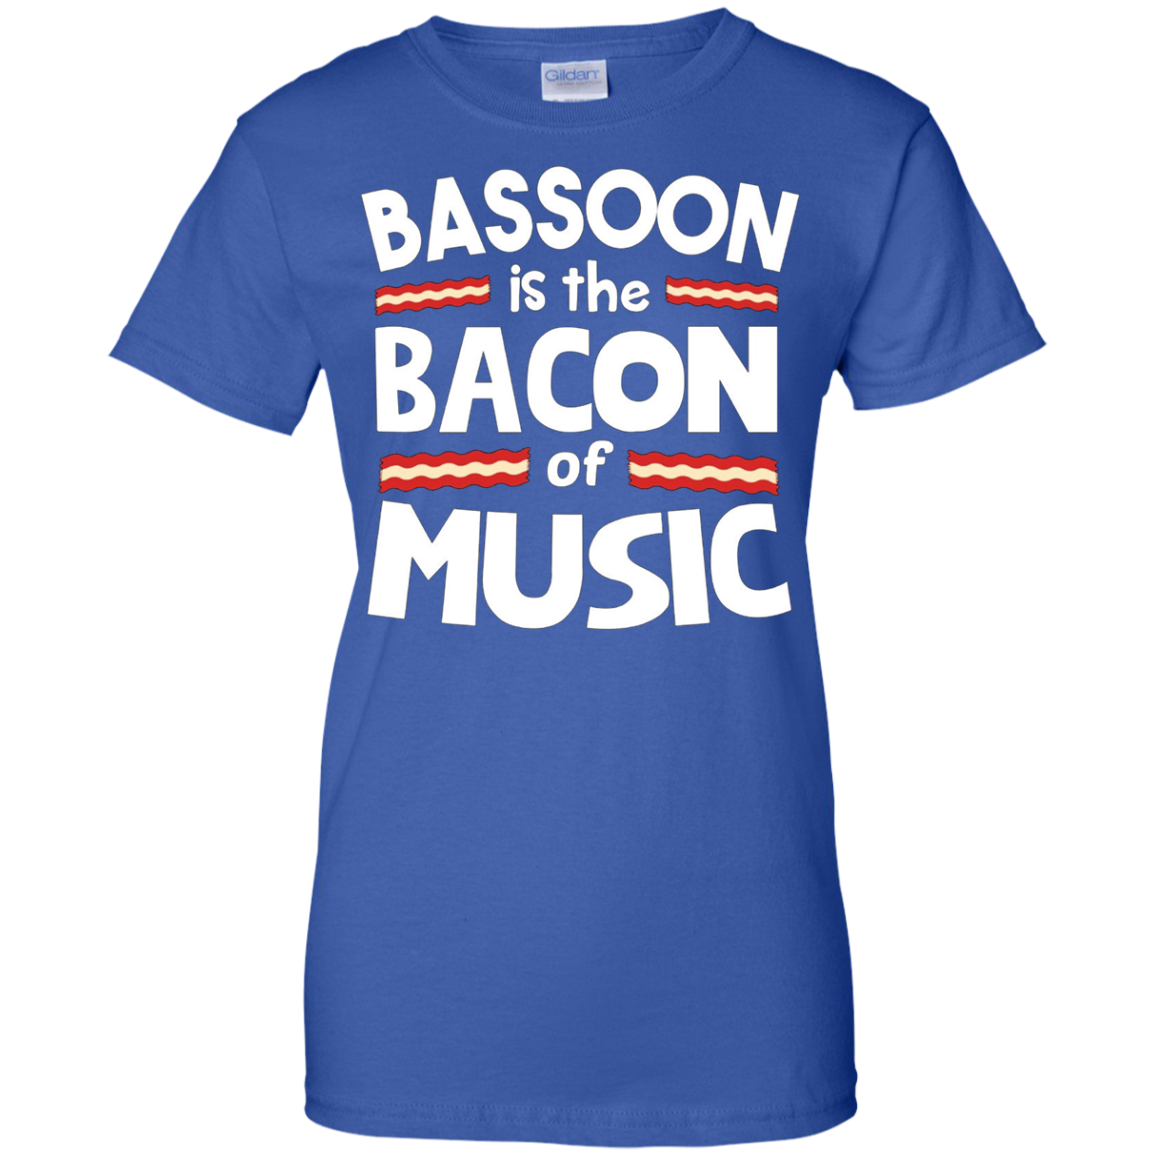 Bassoon is the Bacon of Music Funny T-Shirt